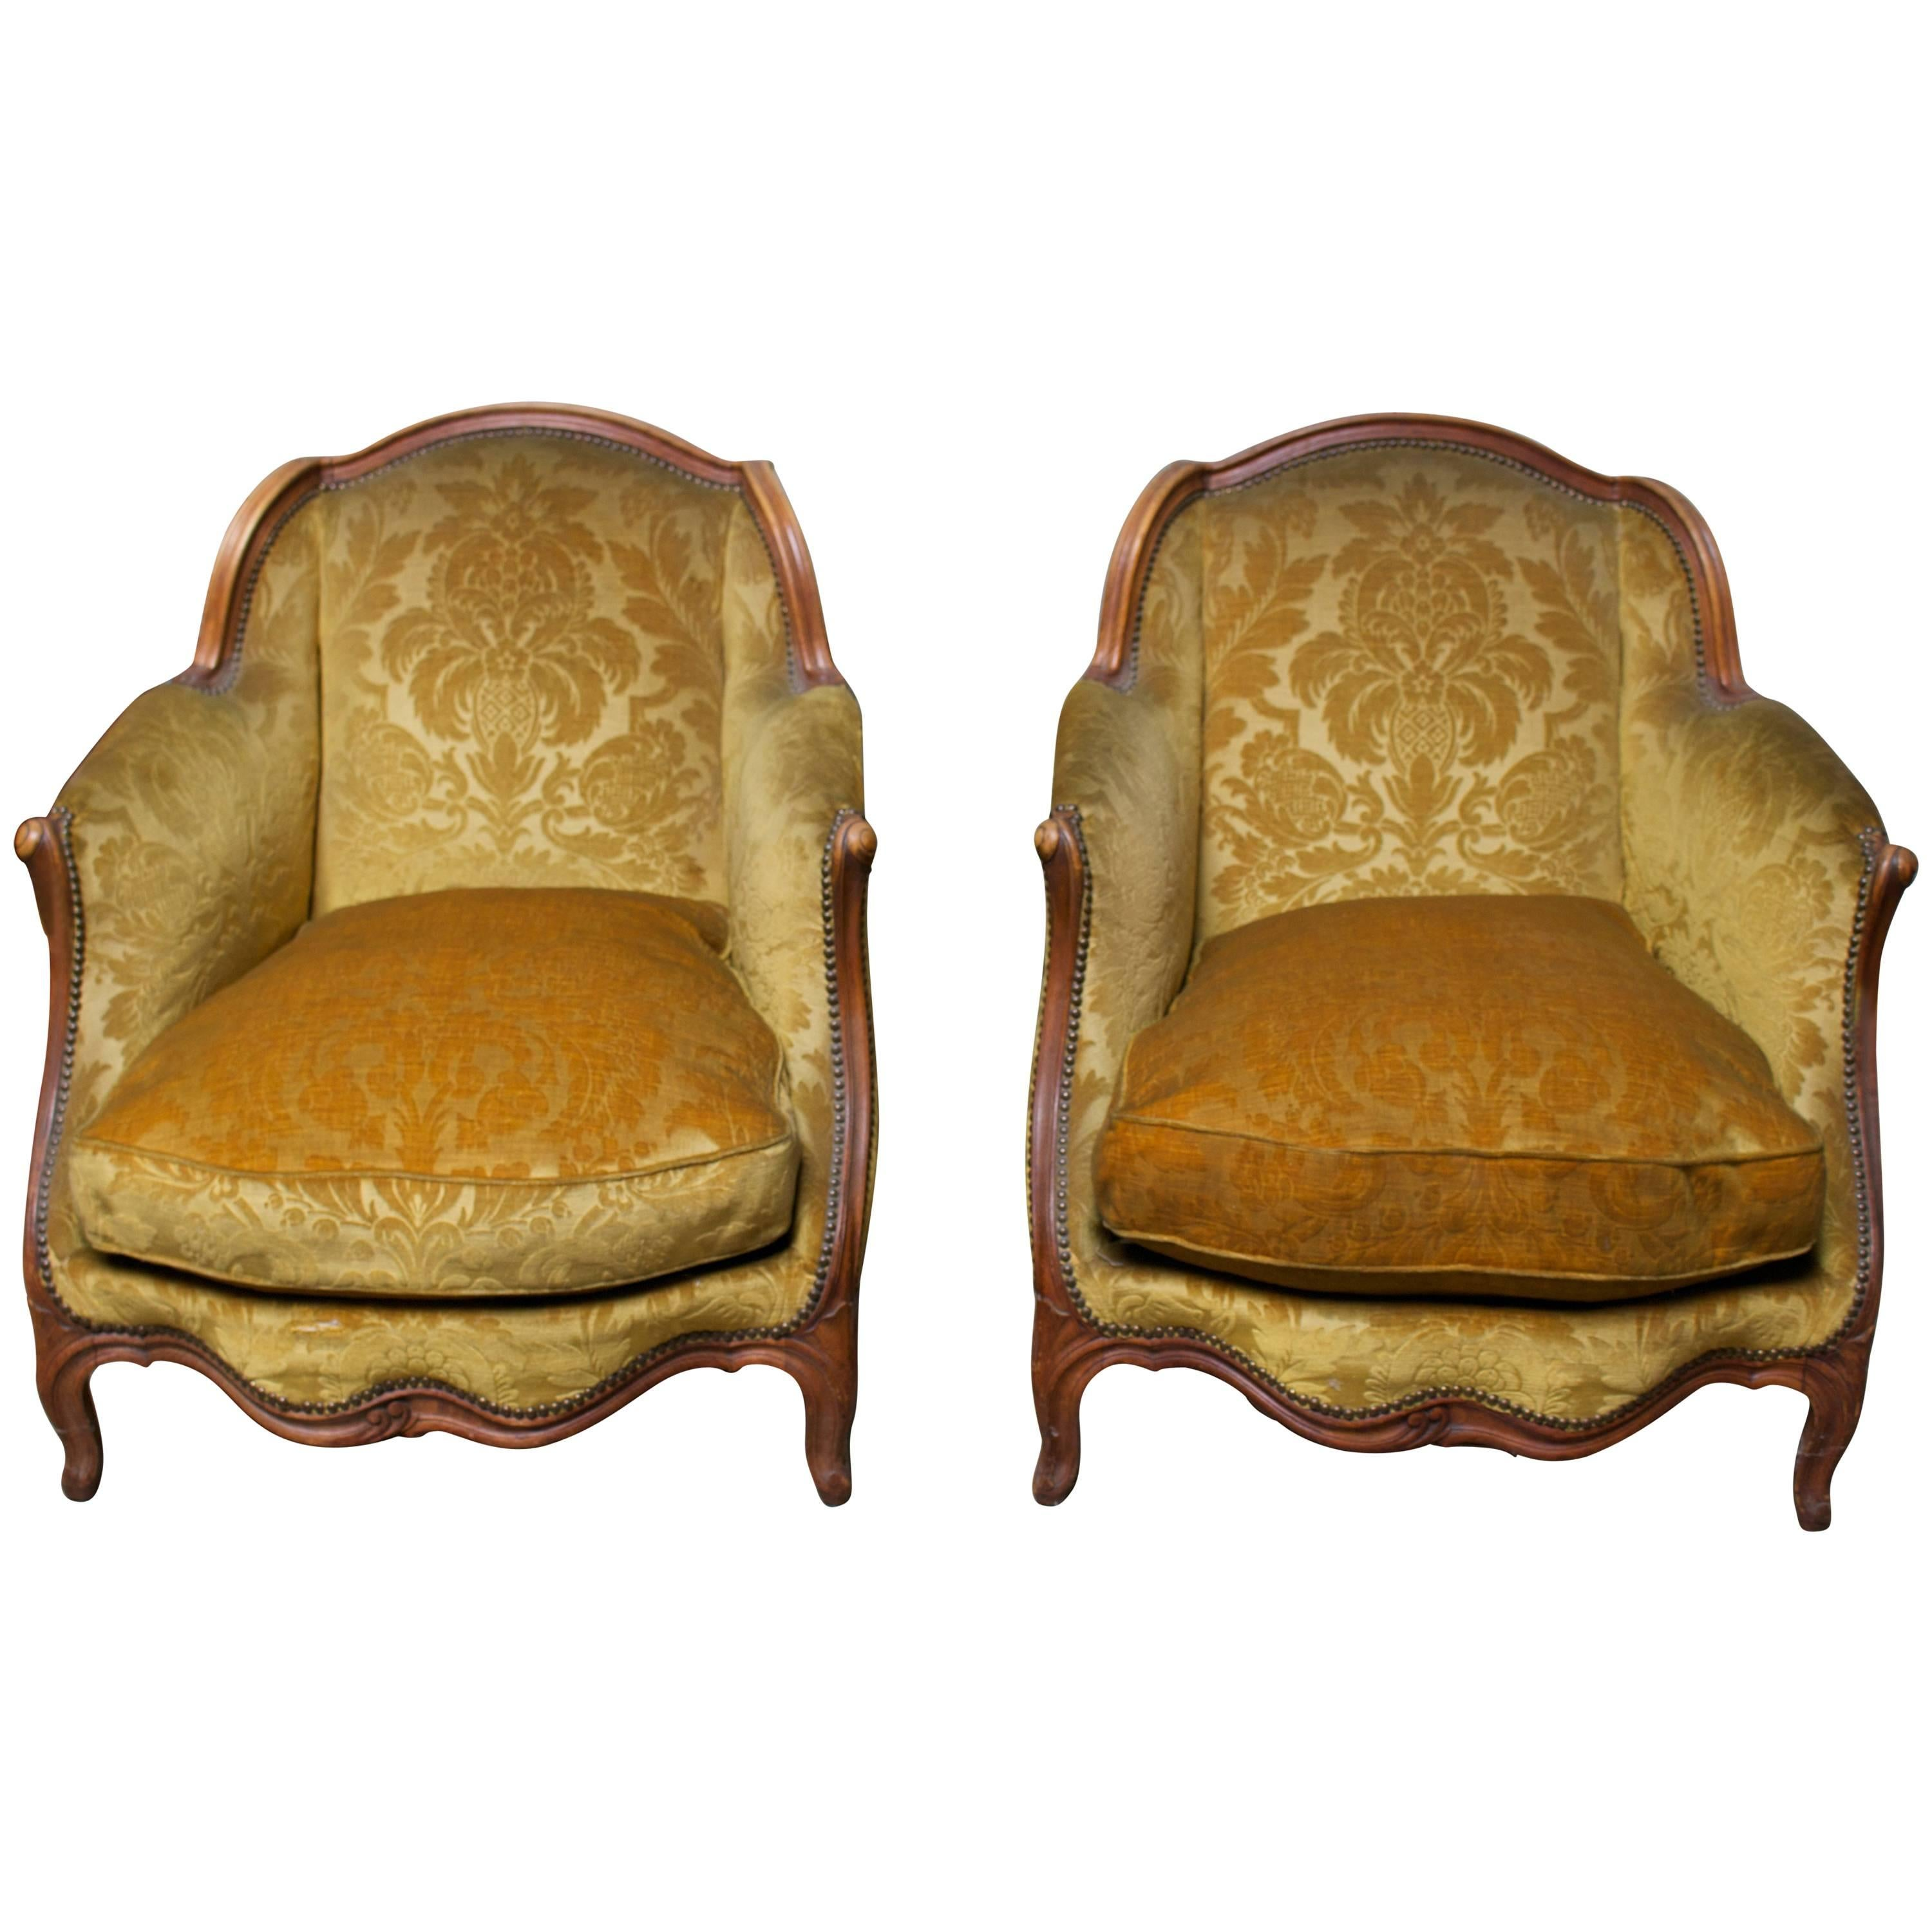 Pair of French Carved Wood Bergeres